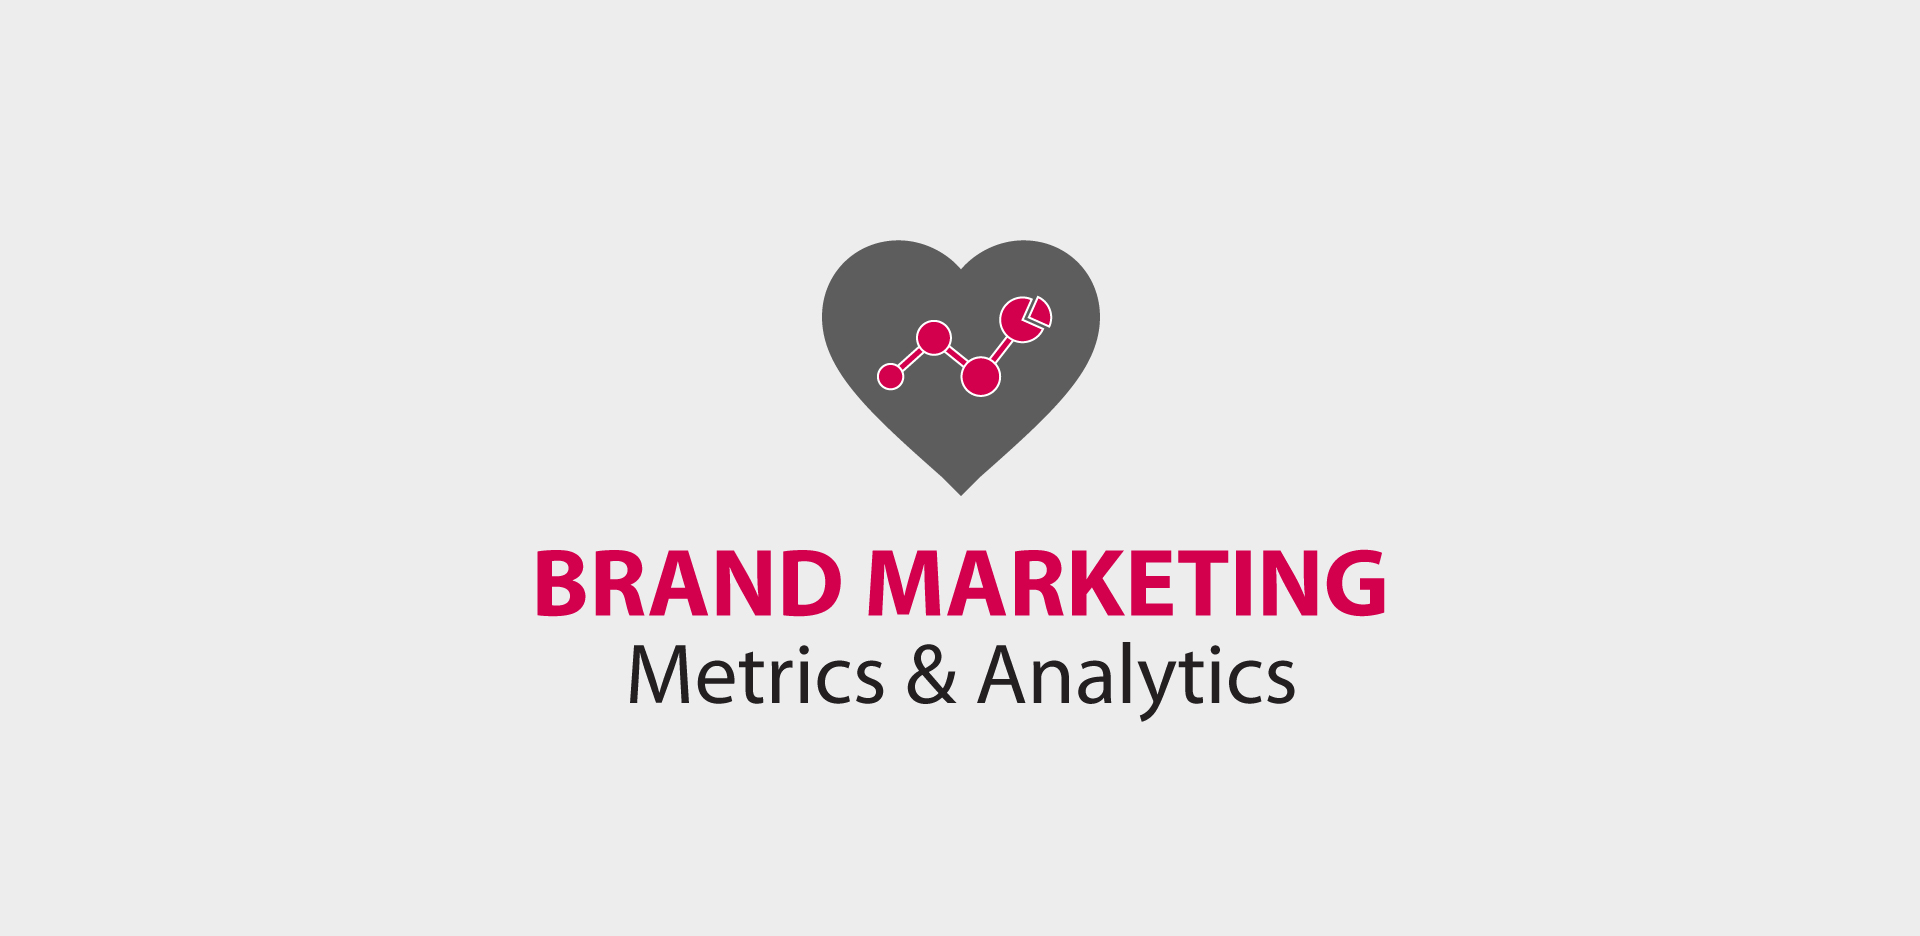 marketing metrics There are hundreds of social media metrics to be analyzed and we have you   new page likes shows the number of new likes your page received  post  hides, spam reports and unlikes or engagement rate percentage  you set your  google analytics goal up with a specific dollar value per conversion.